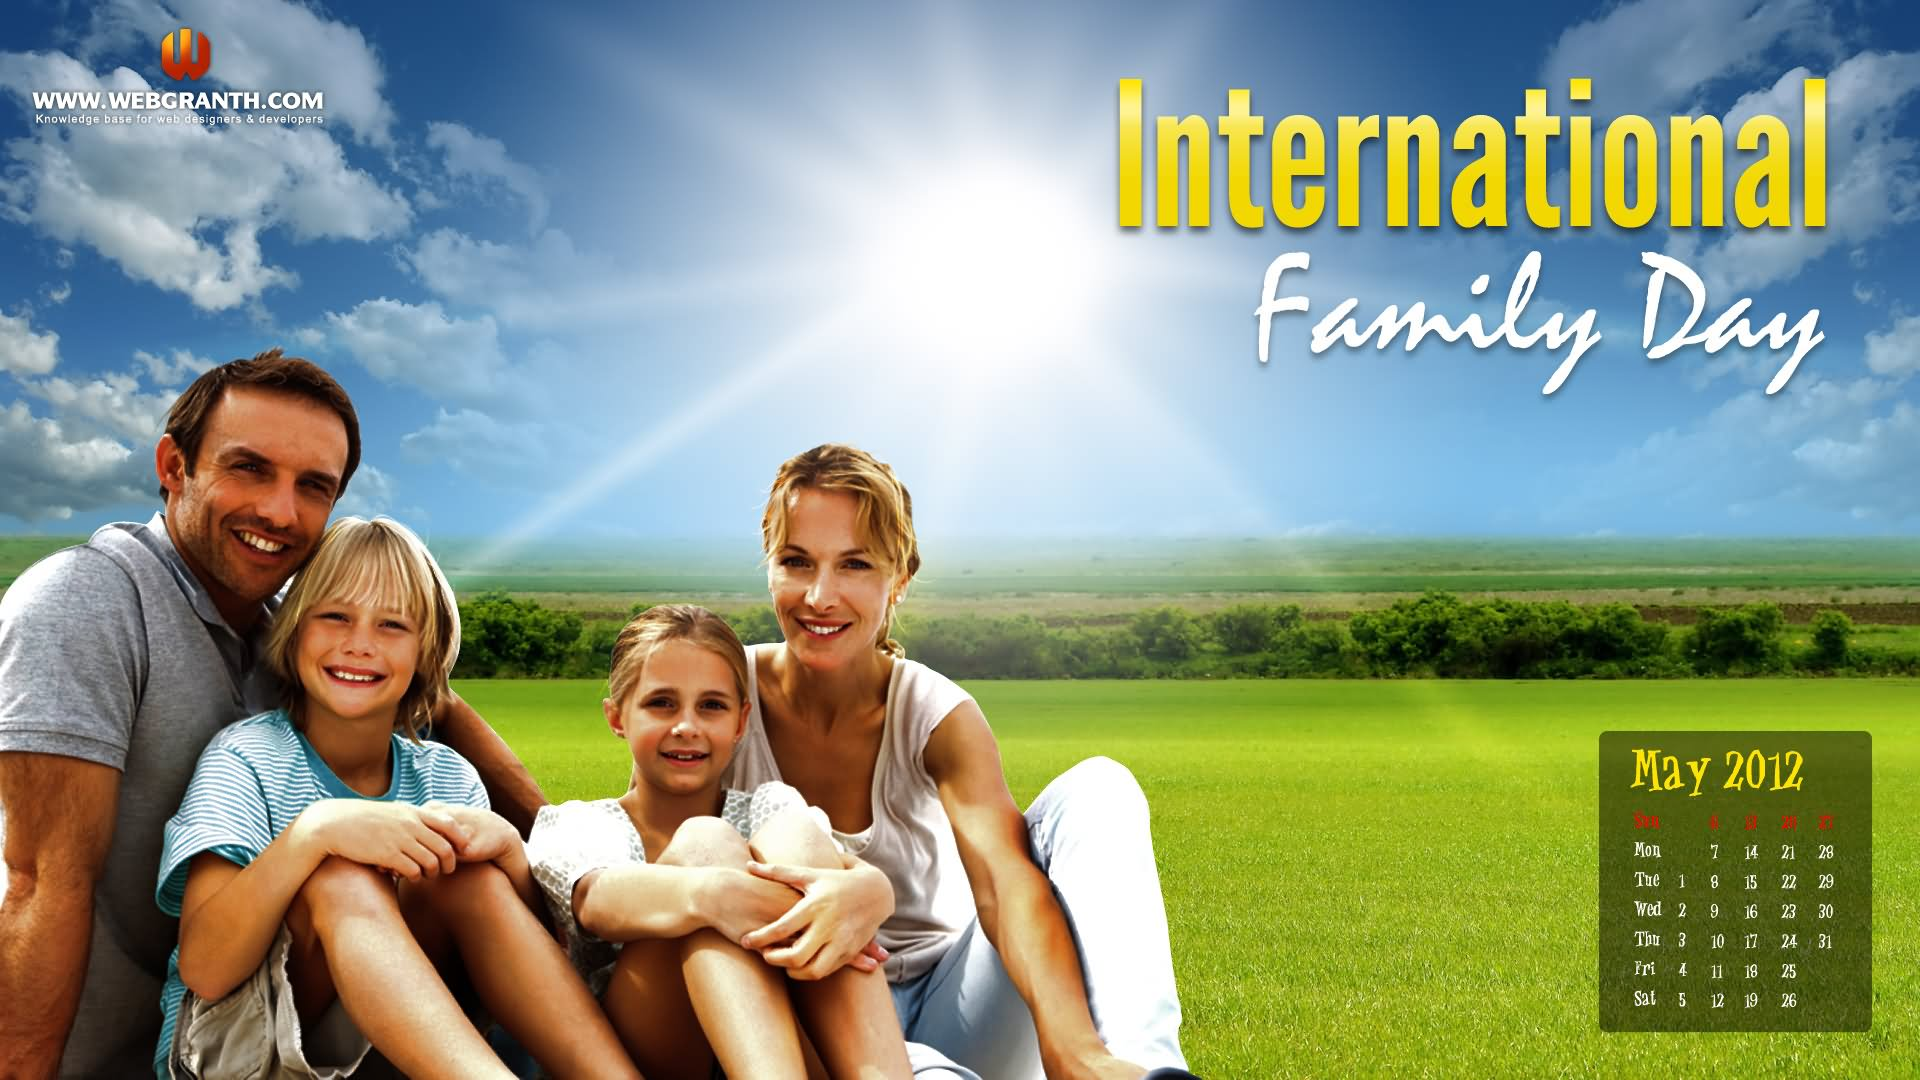 International Family Day Picture